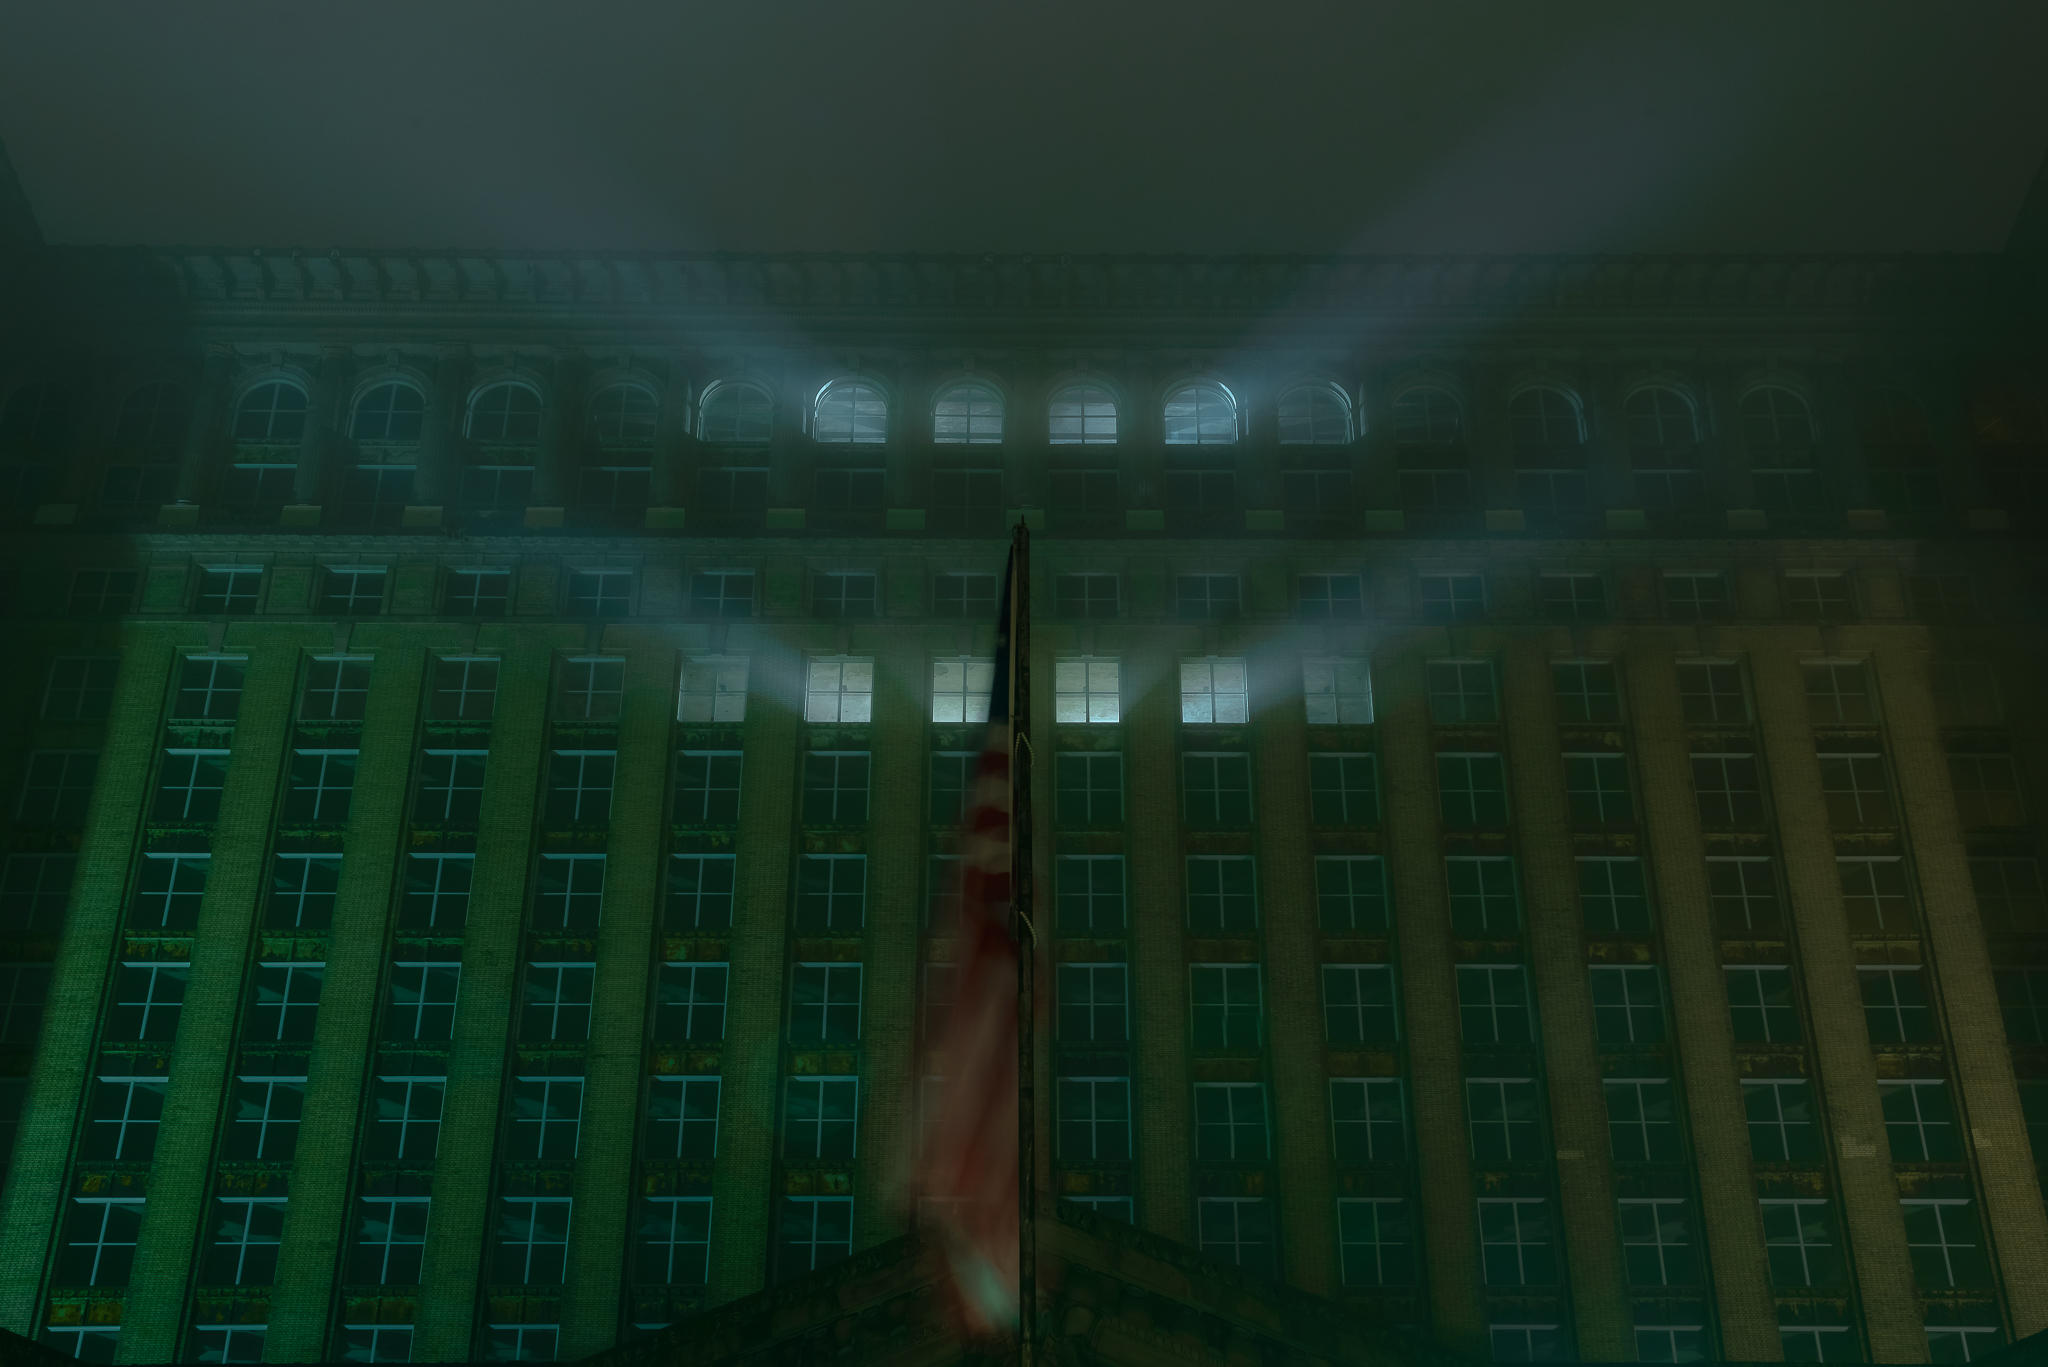 detroit_mighican_central_station_fog_lights.jpg